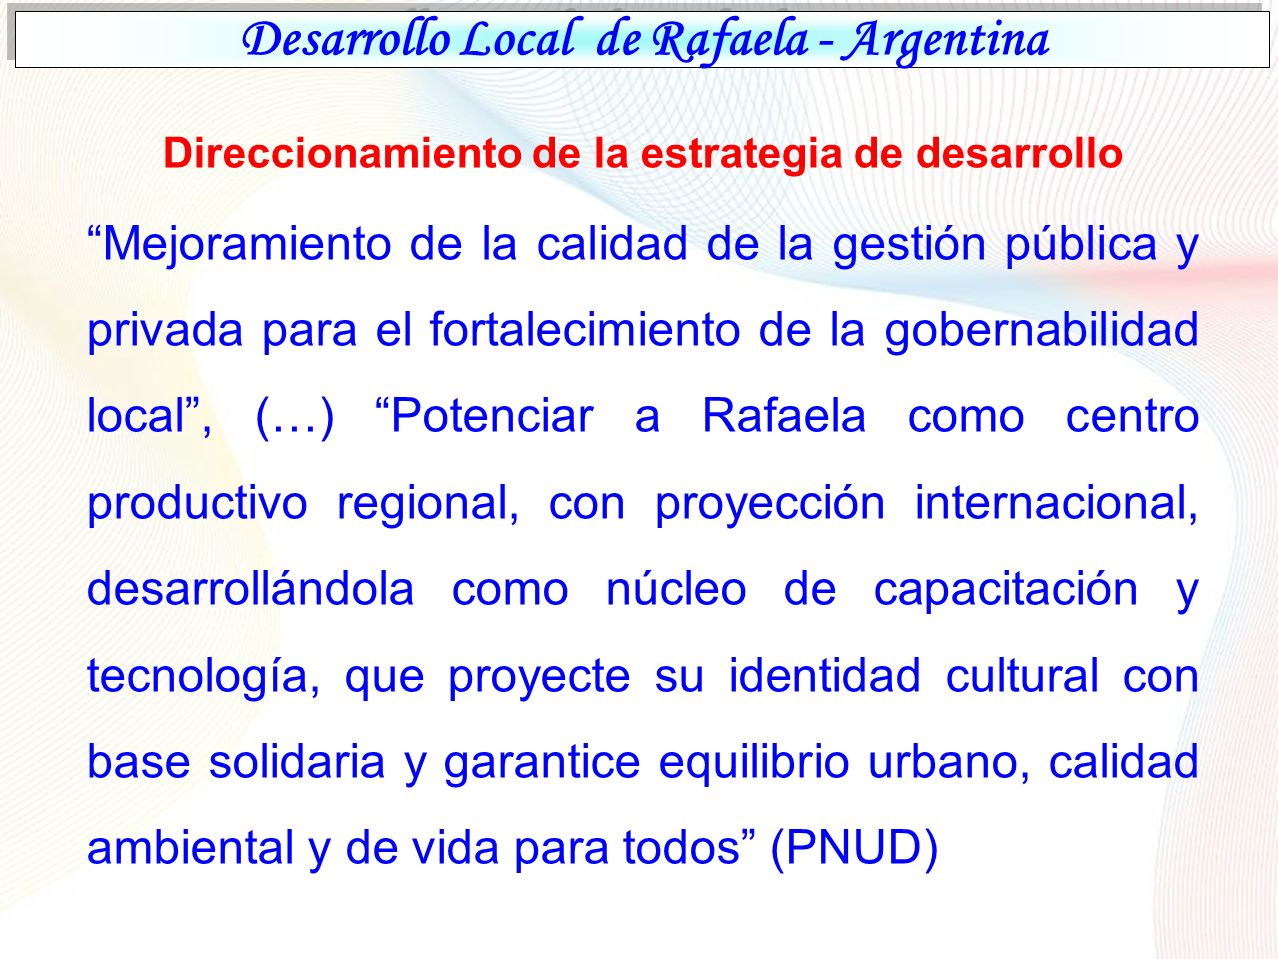 Desarrollo Local de Rafaela - Argentina